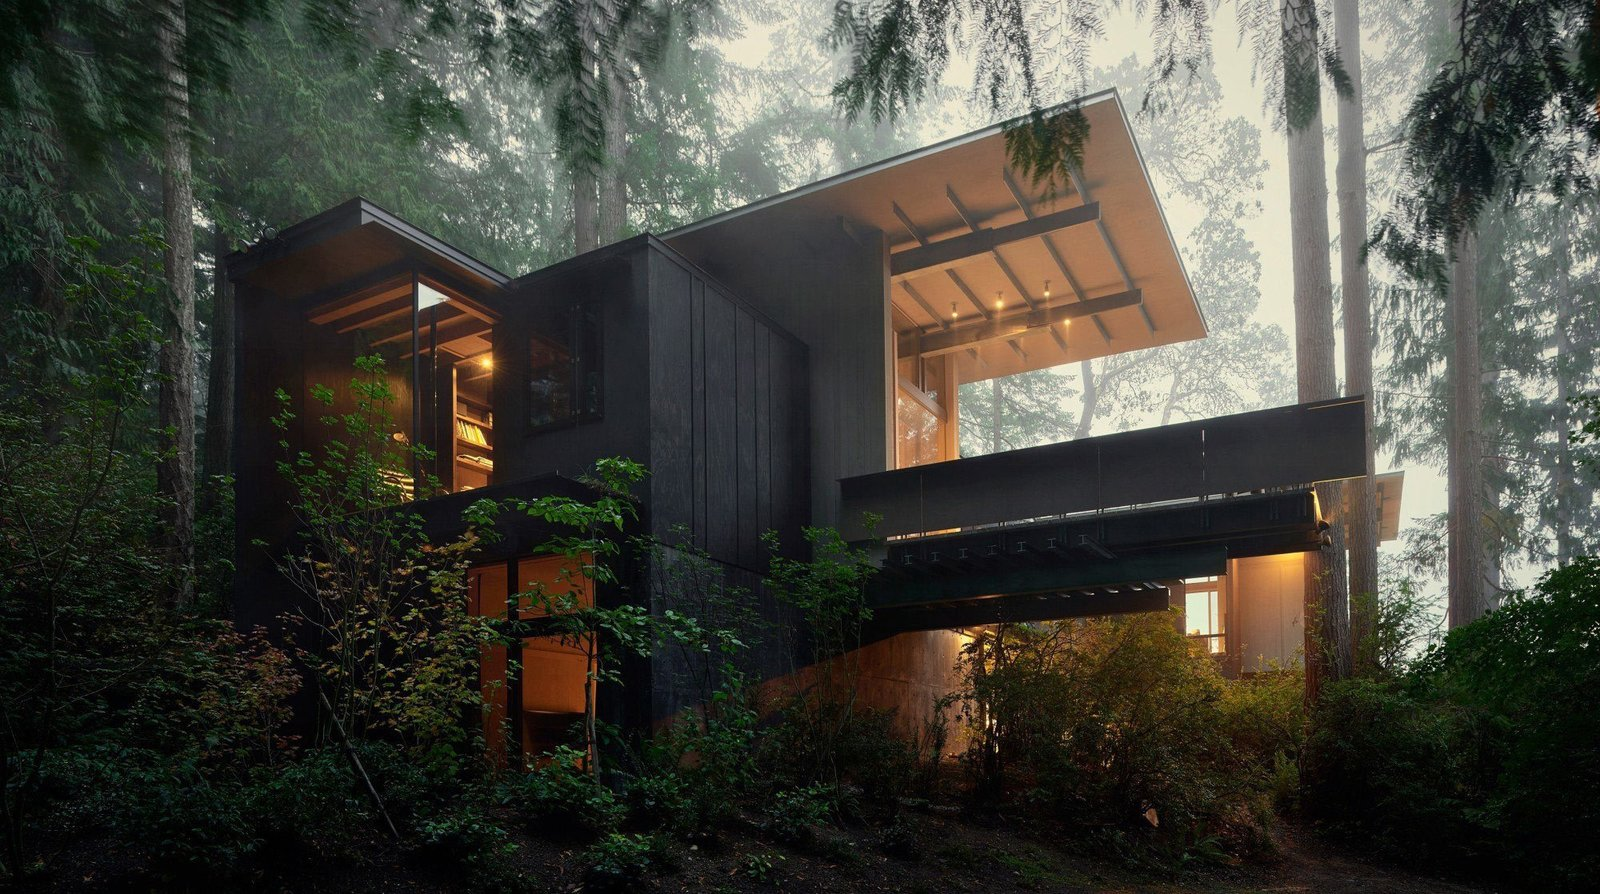 Jim Olson's #cabin at Longbranch Washington #olsonkundig  Cabin by DAVE MORIN from Small and Quiet